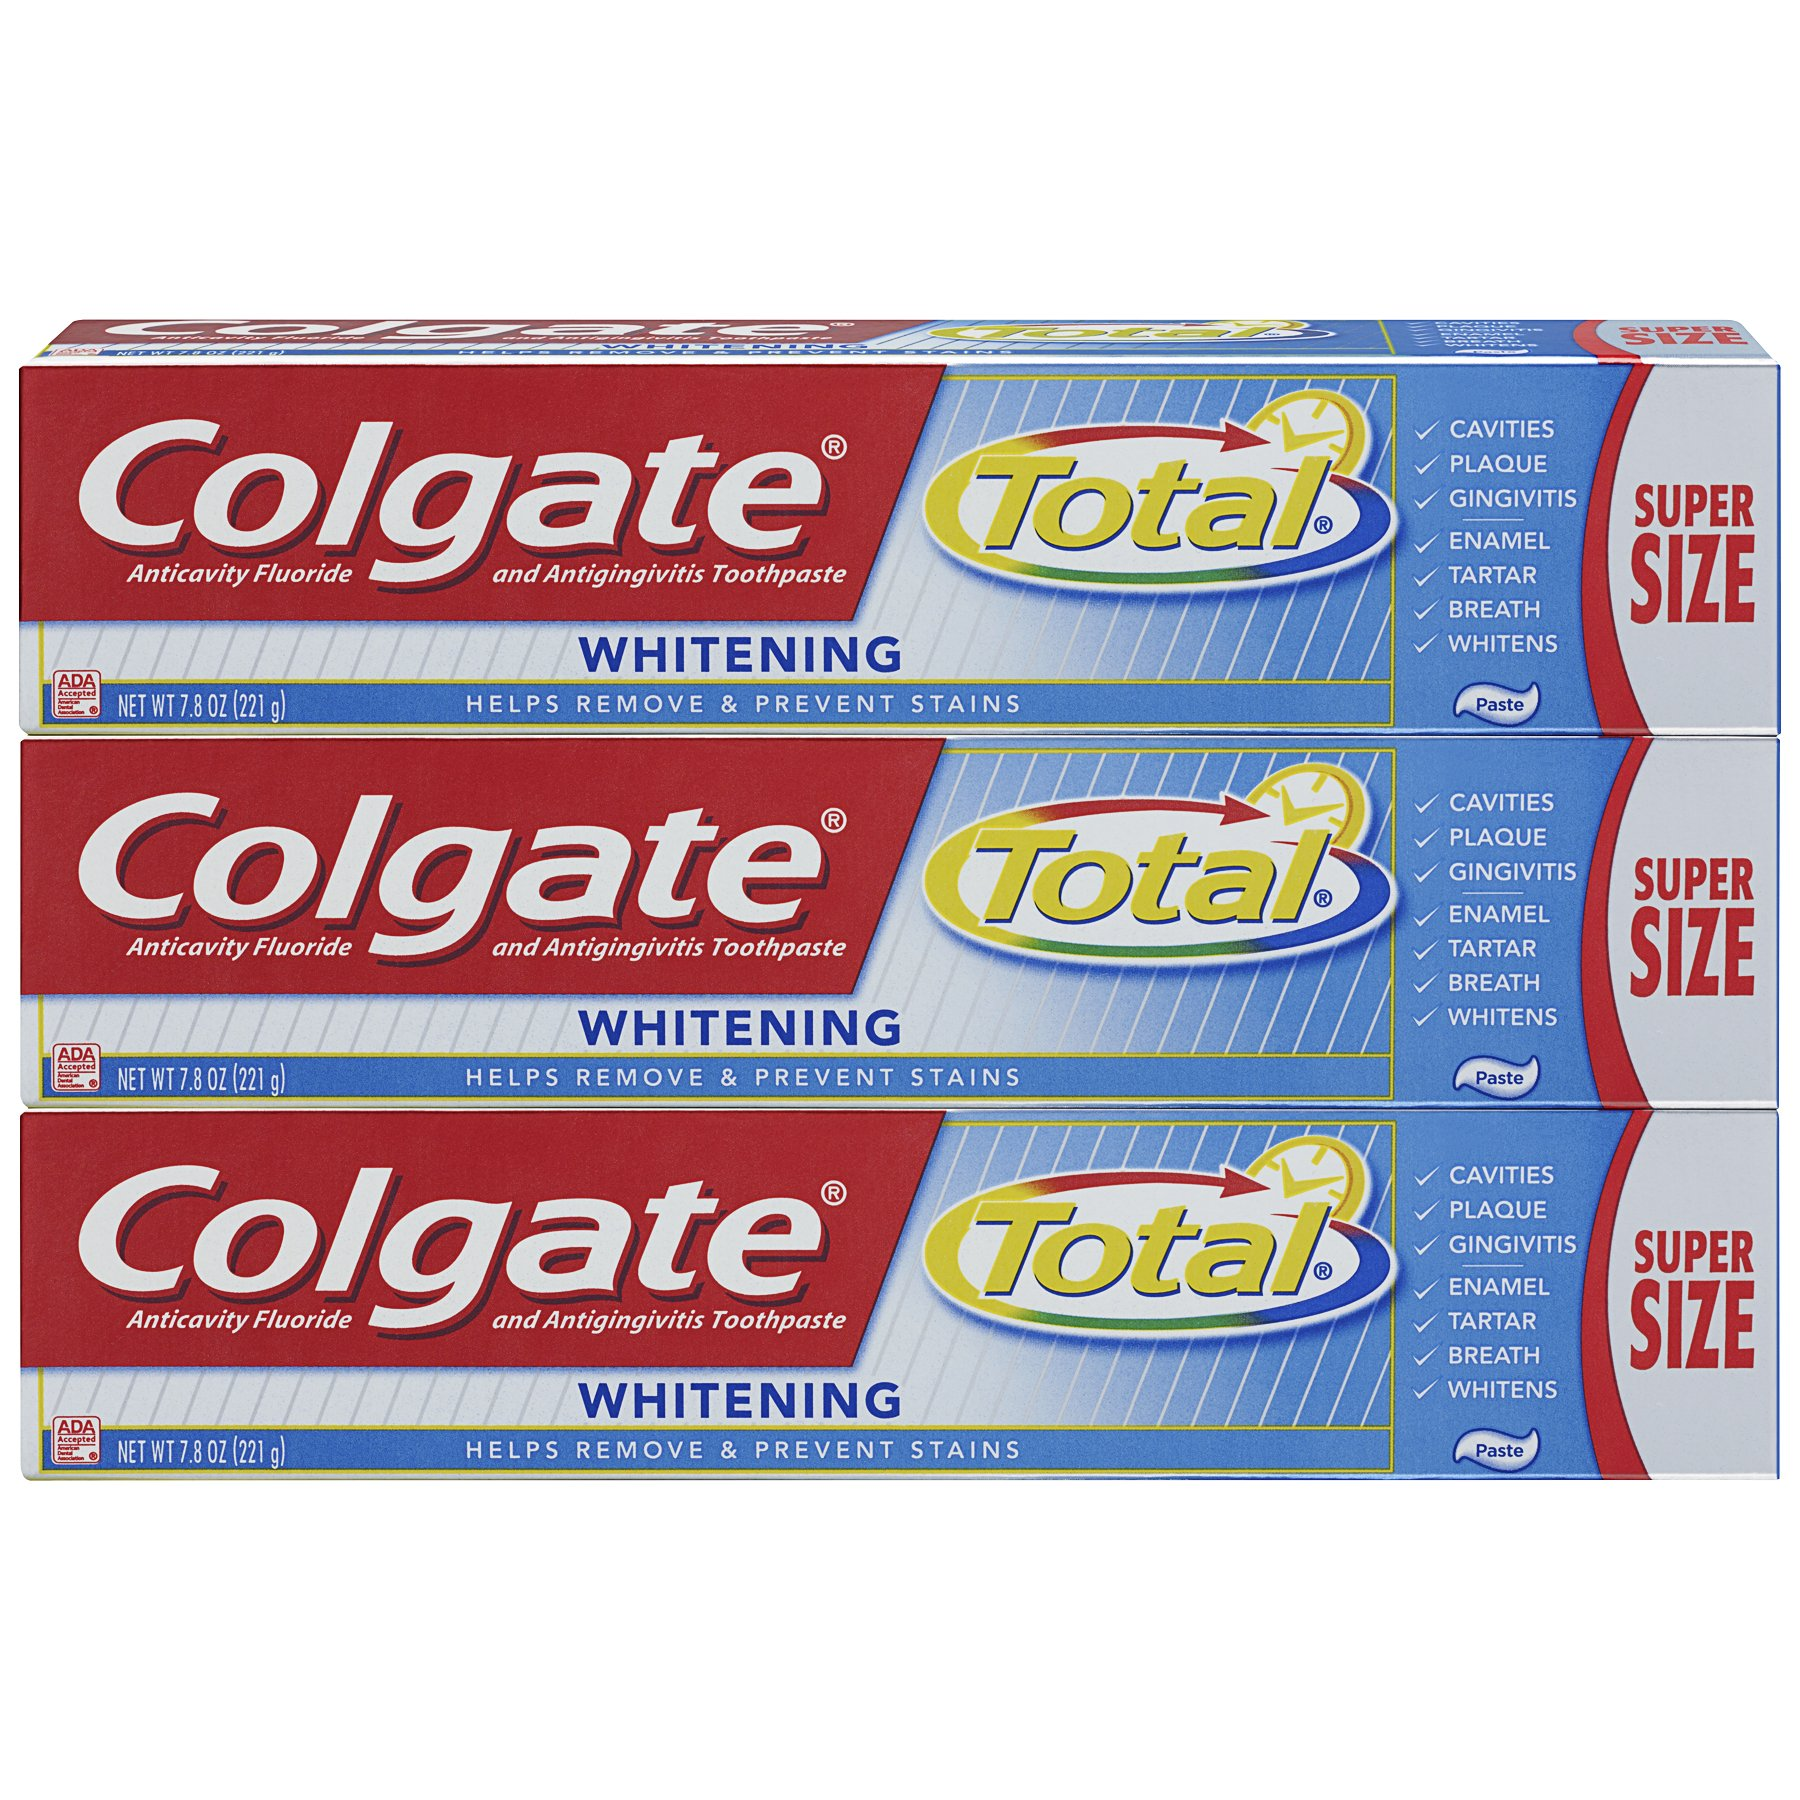 Colgate Toothpaste, Total Whitening, 7.8 oz Triple Pack (Super Size) by Colgate (Image #1)